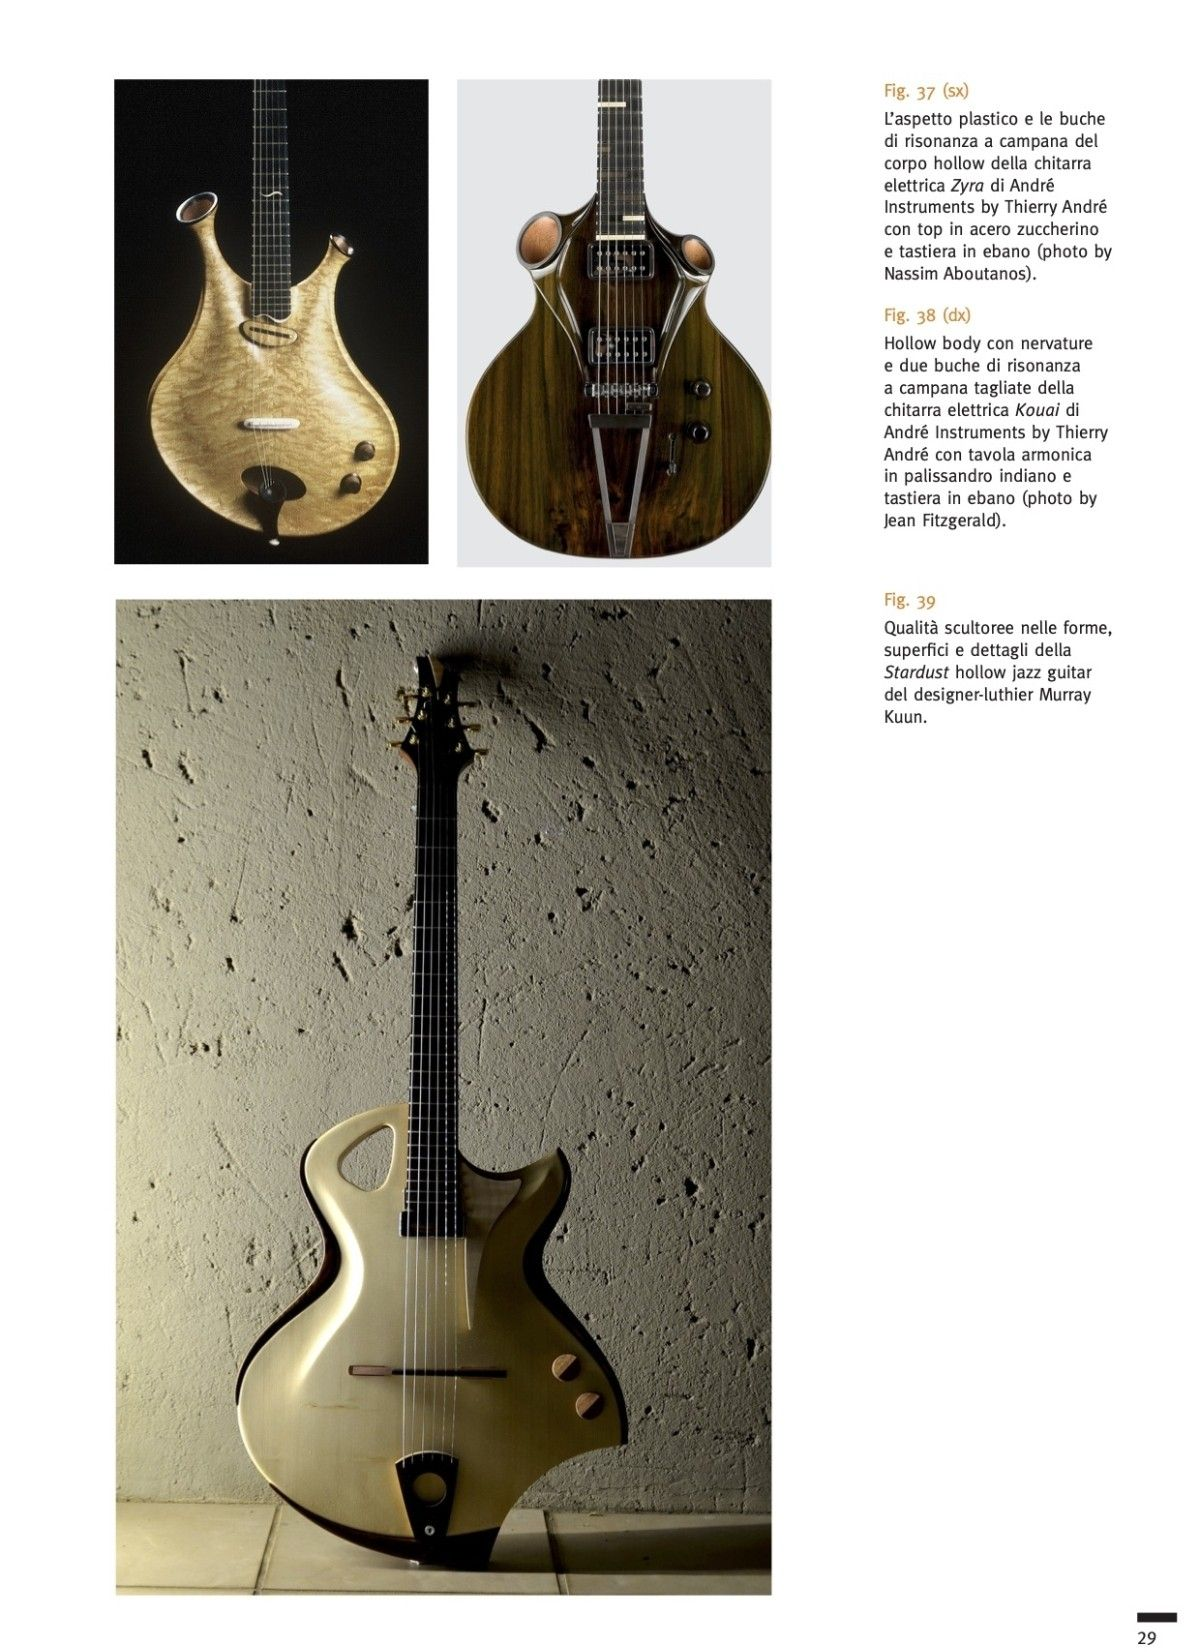 Pin on murray kuun guitar design + lutherie